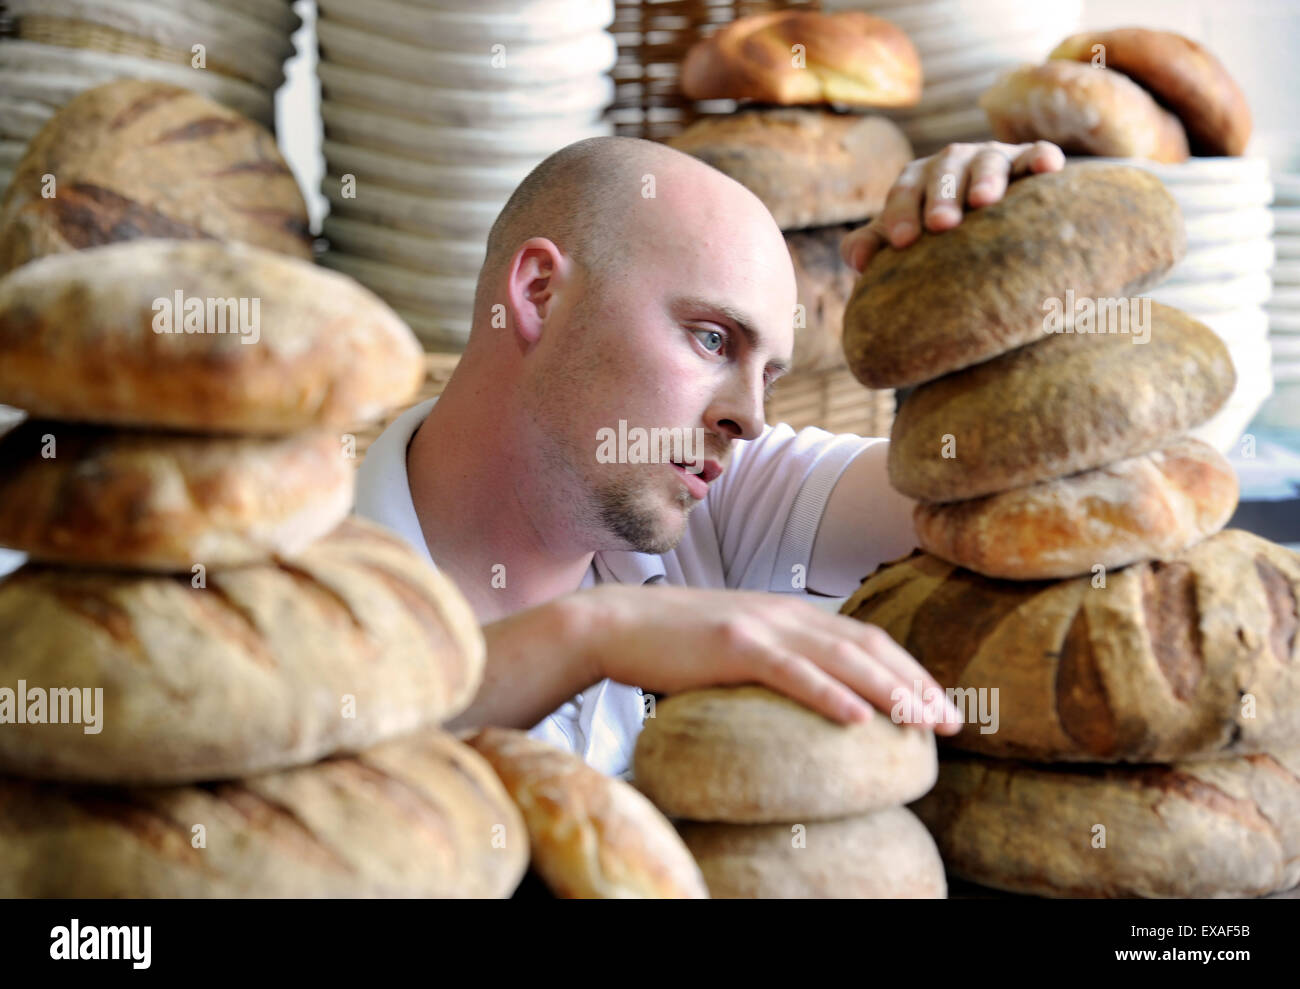 The artisan baker Alex Gooch at his in Hay-on-Wye, Herefordshire UK - Stock Image